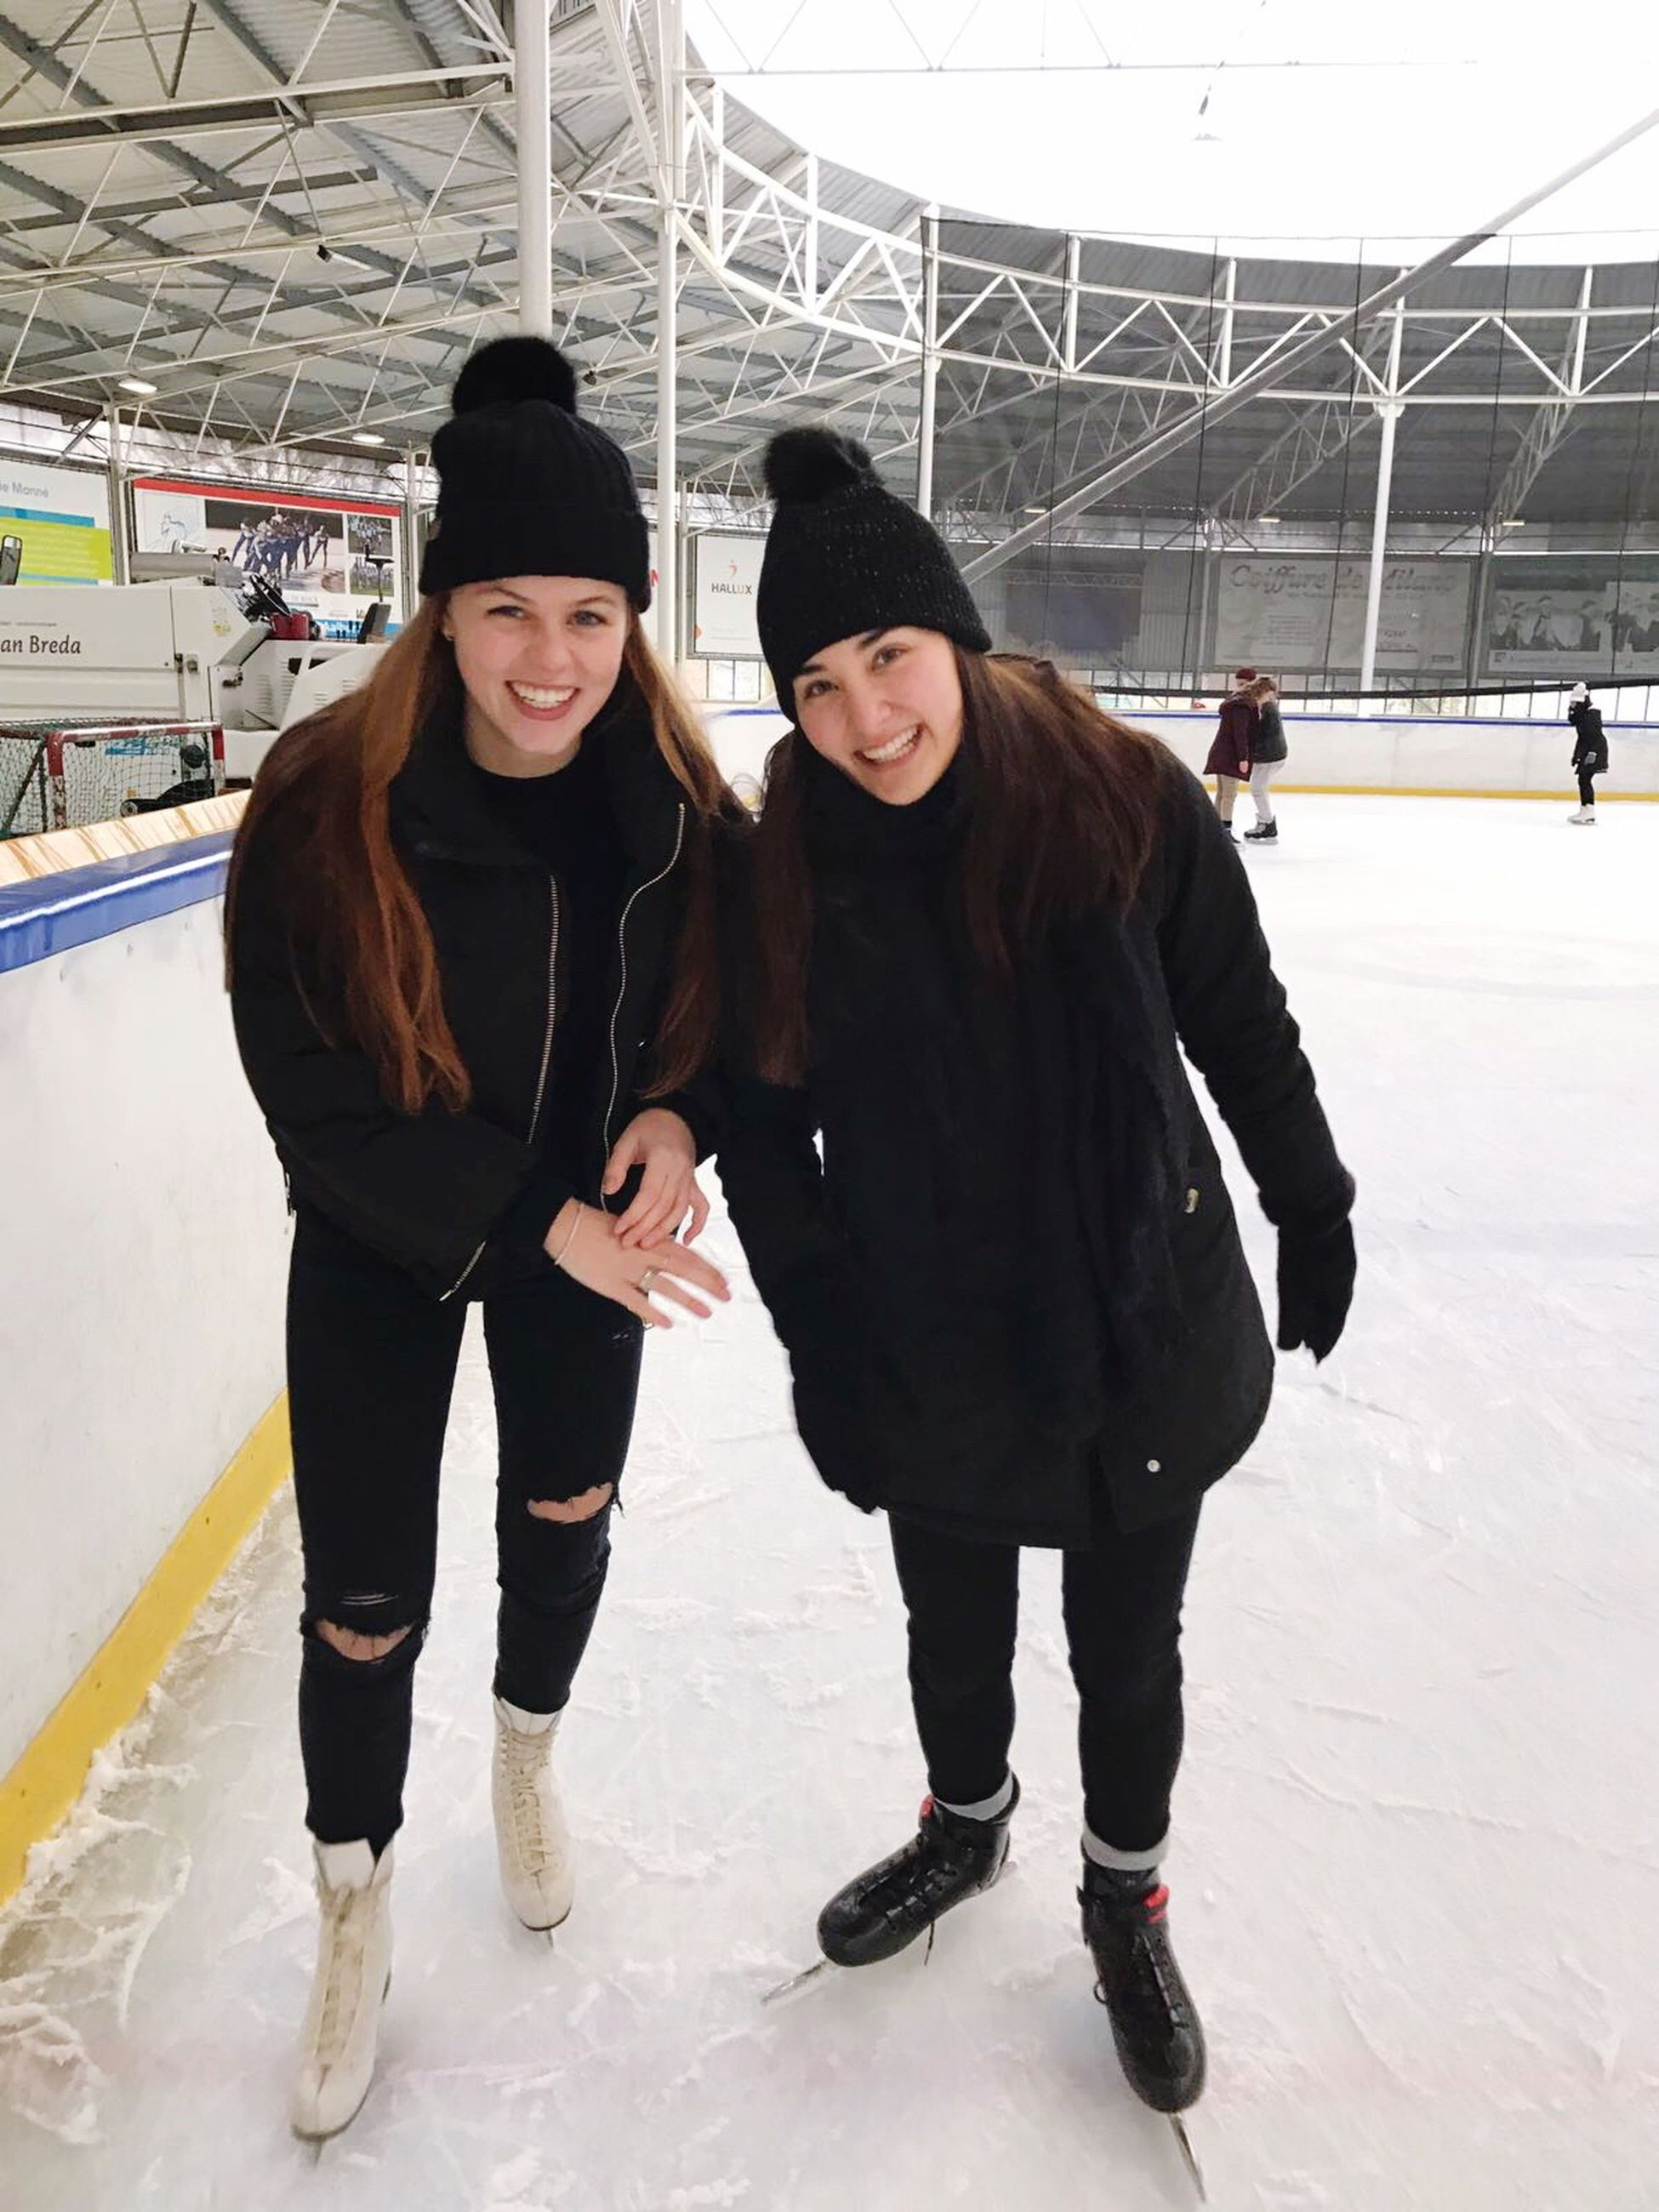 winter, togetherness, sport, two people, recreational pursuit, friendship, happiness, smiling, cold temperature, bonding, portrait, warm clothing, people, leisure activity, cheerful, stadium, men, sports clothing, young adult, adult, outdoors, ice rink, adults only, day